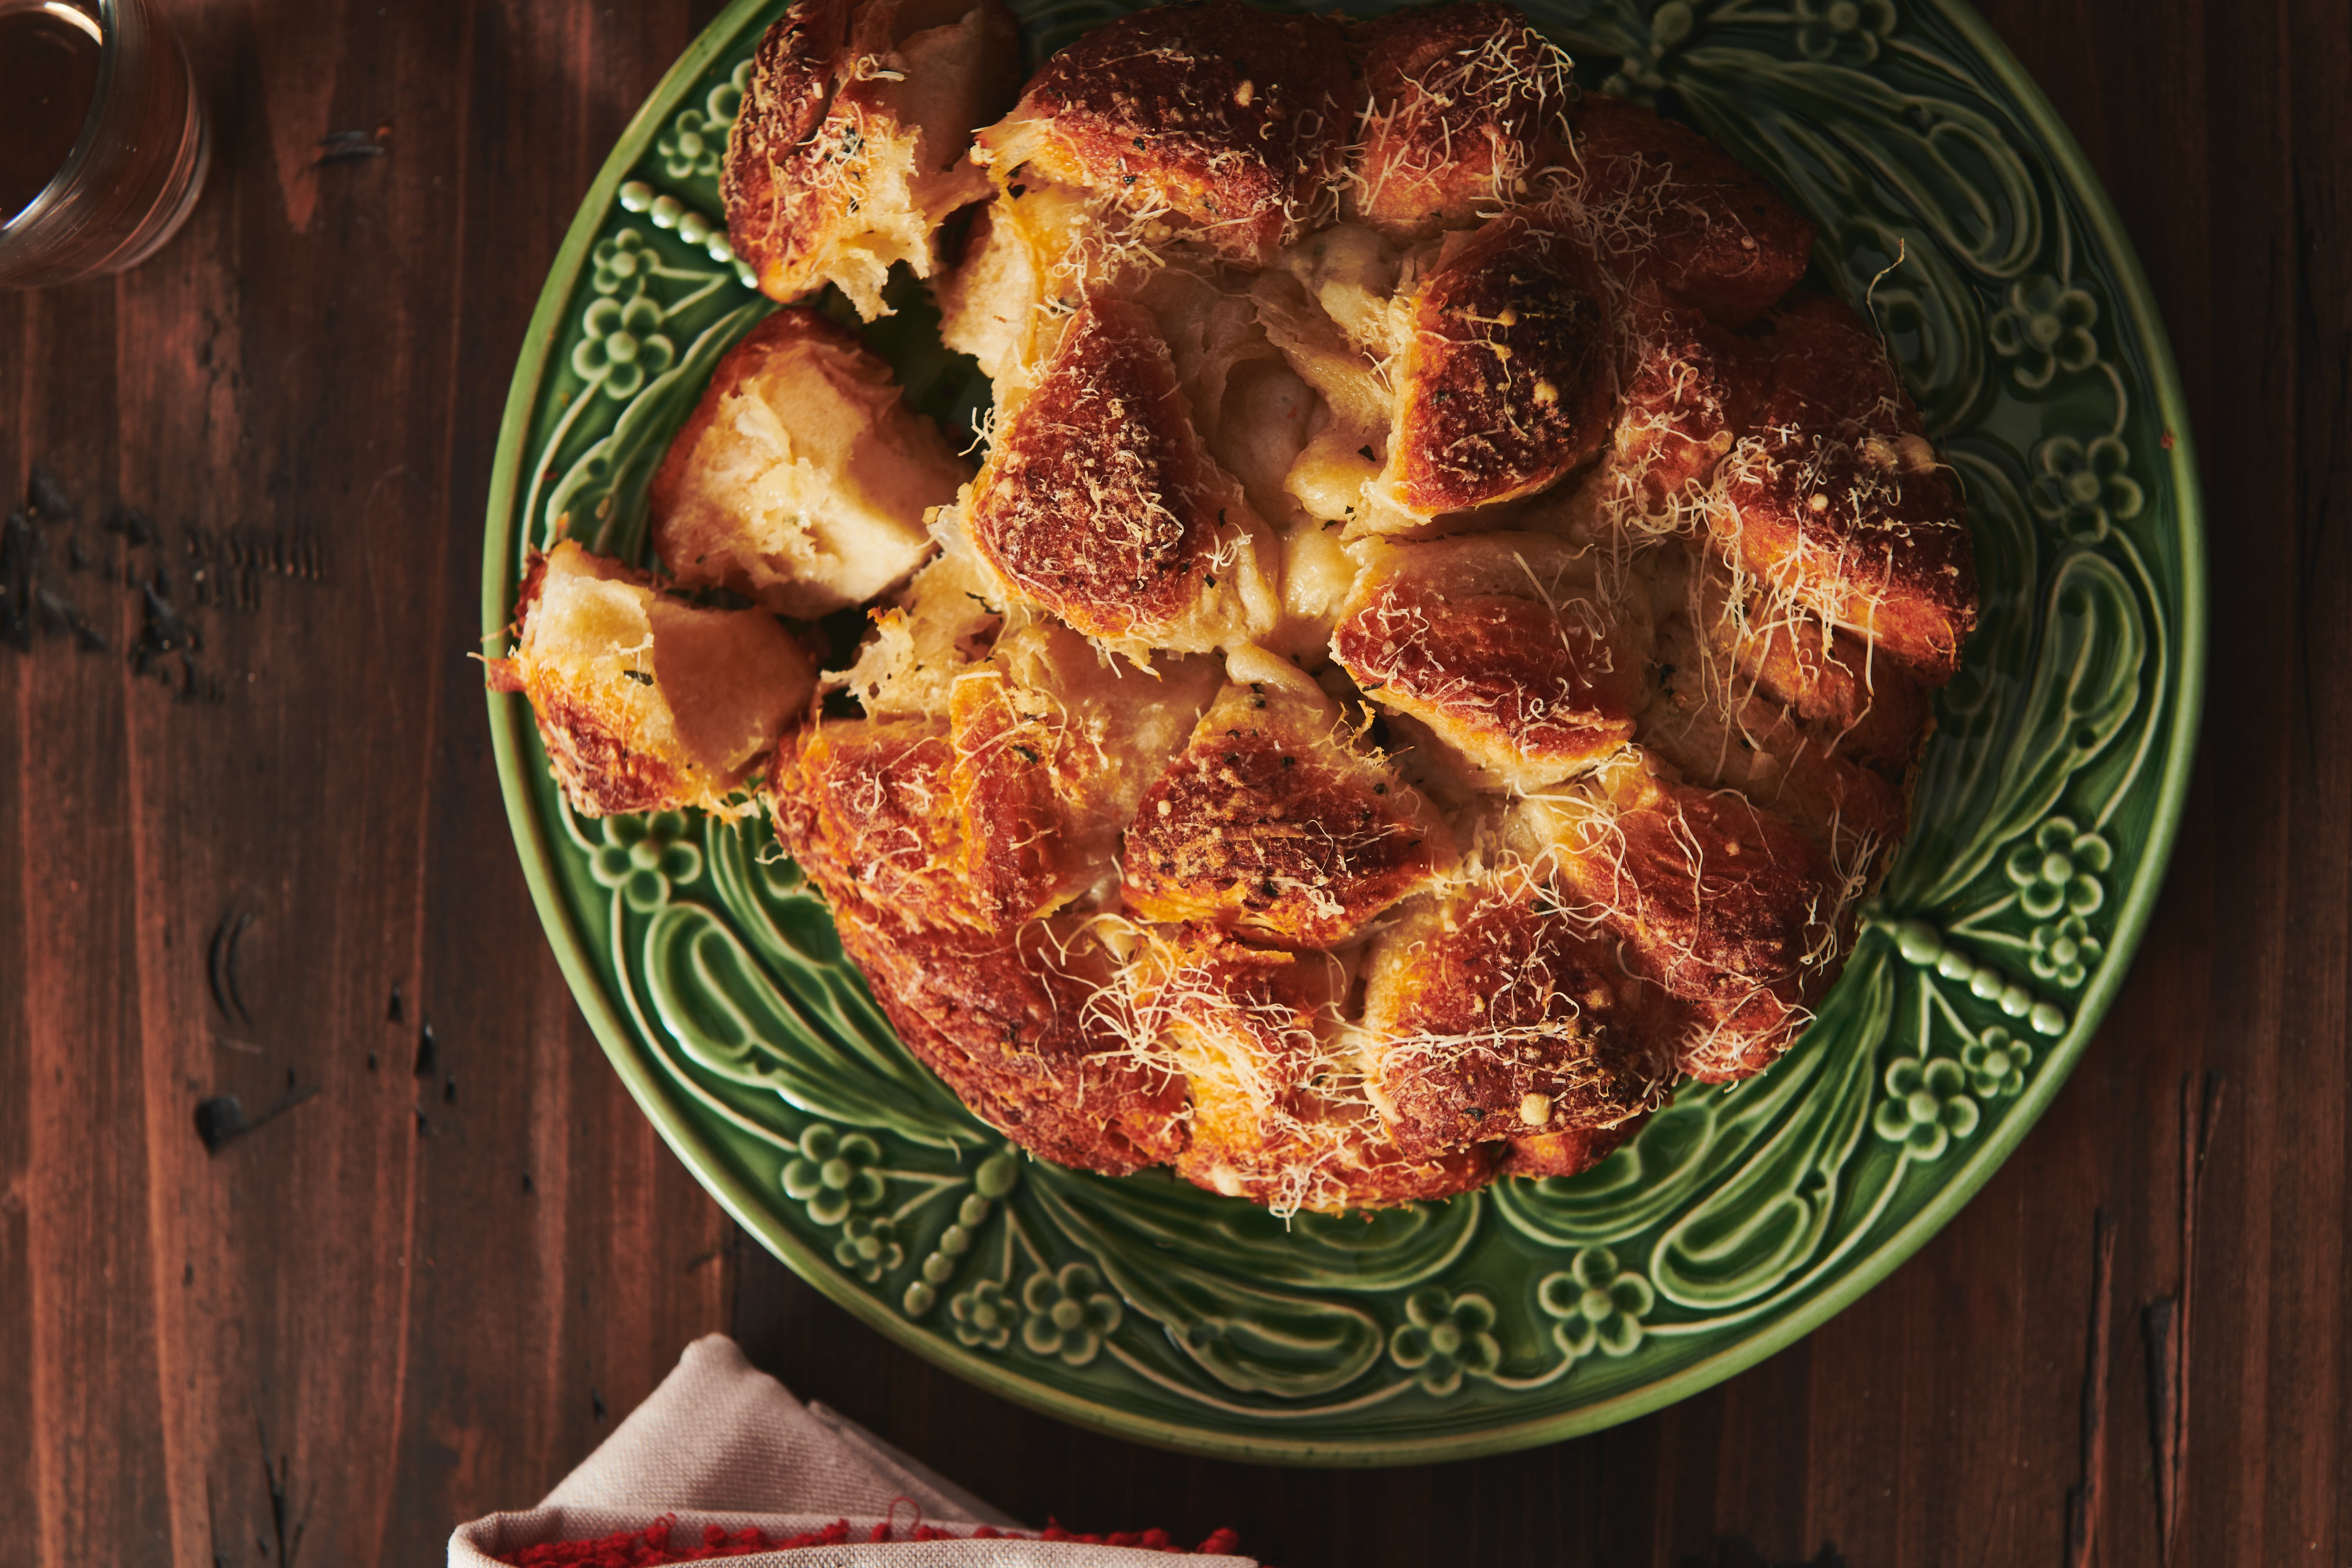 Transform Ho Hum Refrigerated Biscuits Into This Garlicky Oregano Monkey Bread